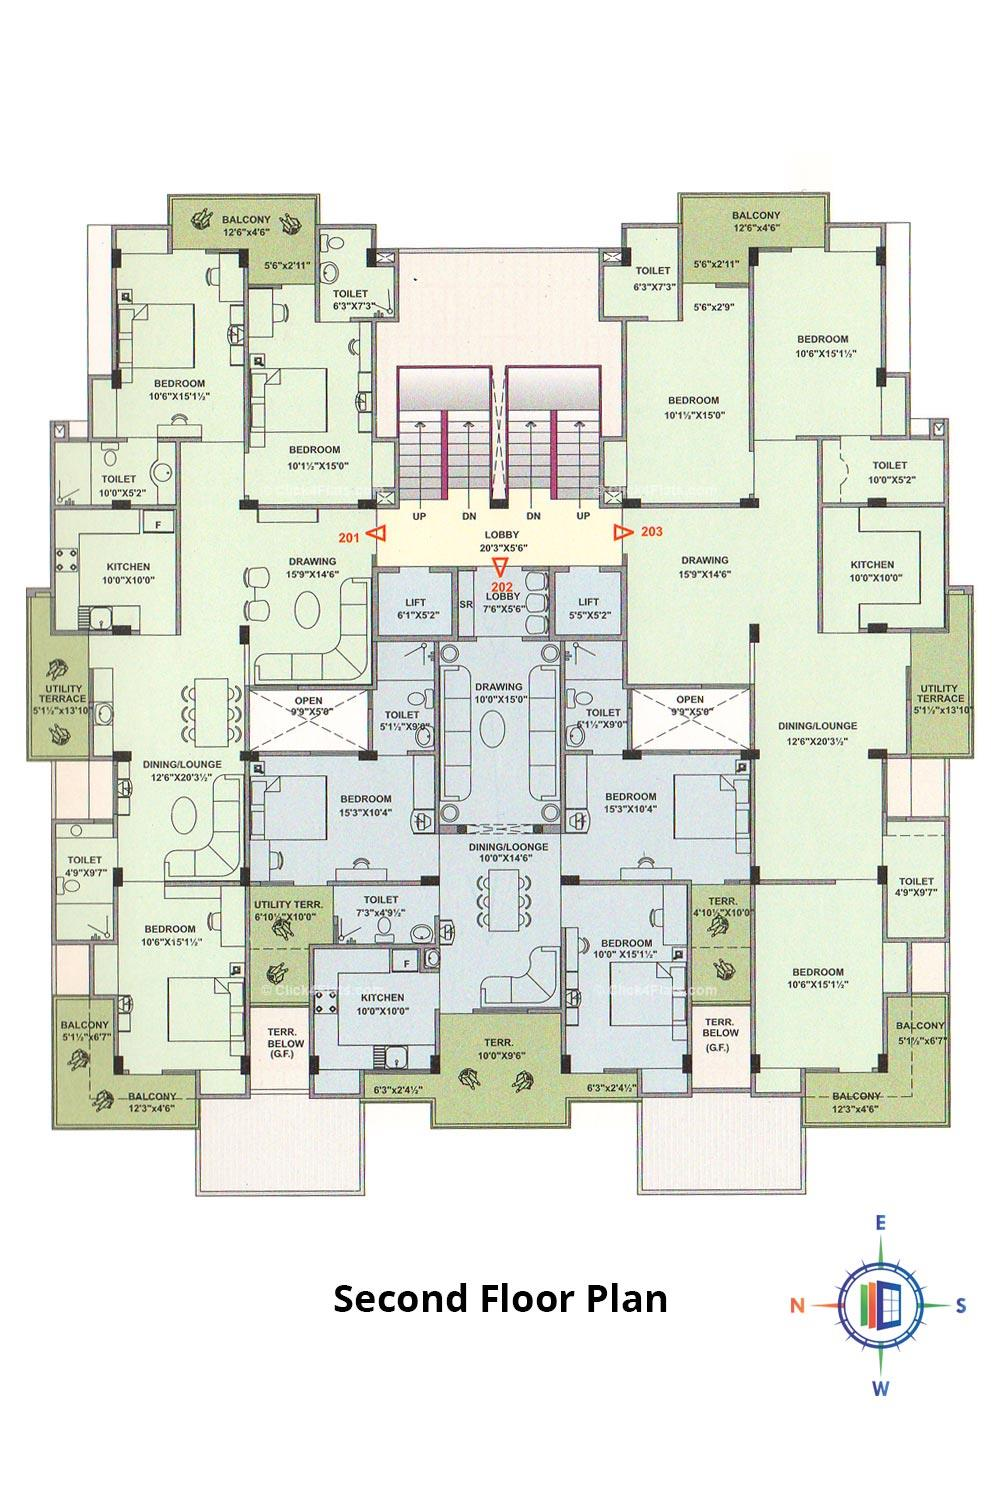 Pearl Passion Goverdhan Second Floor Plan